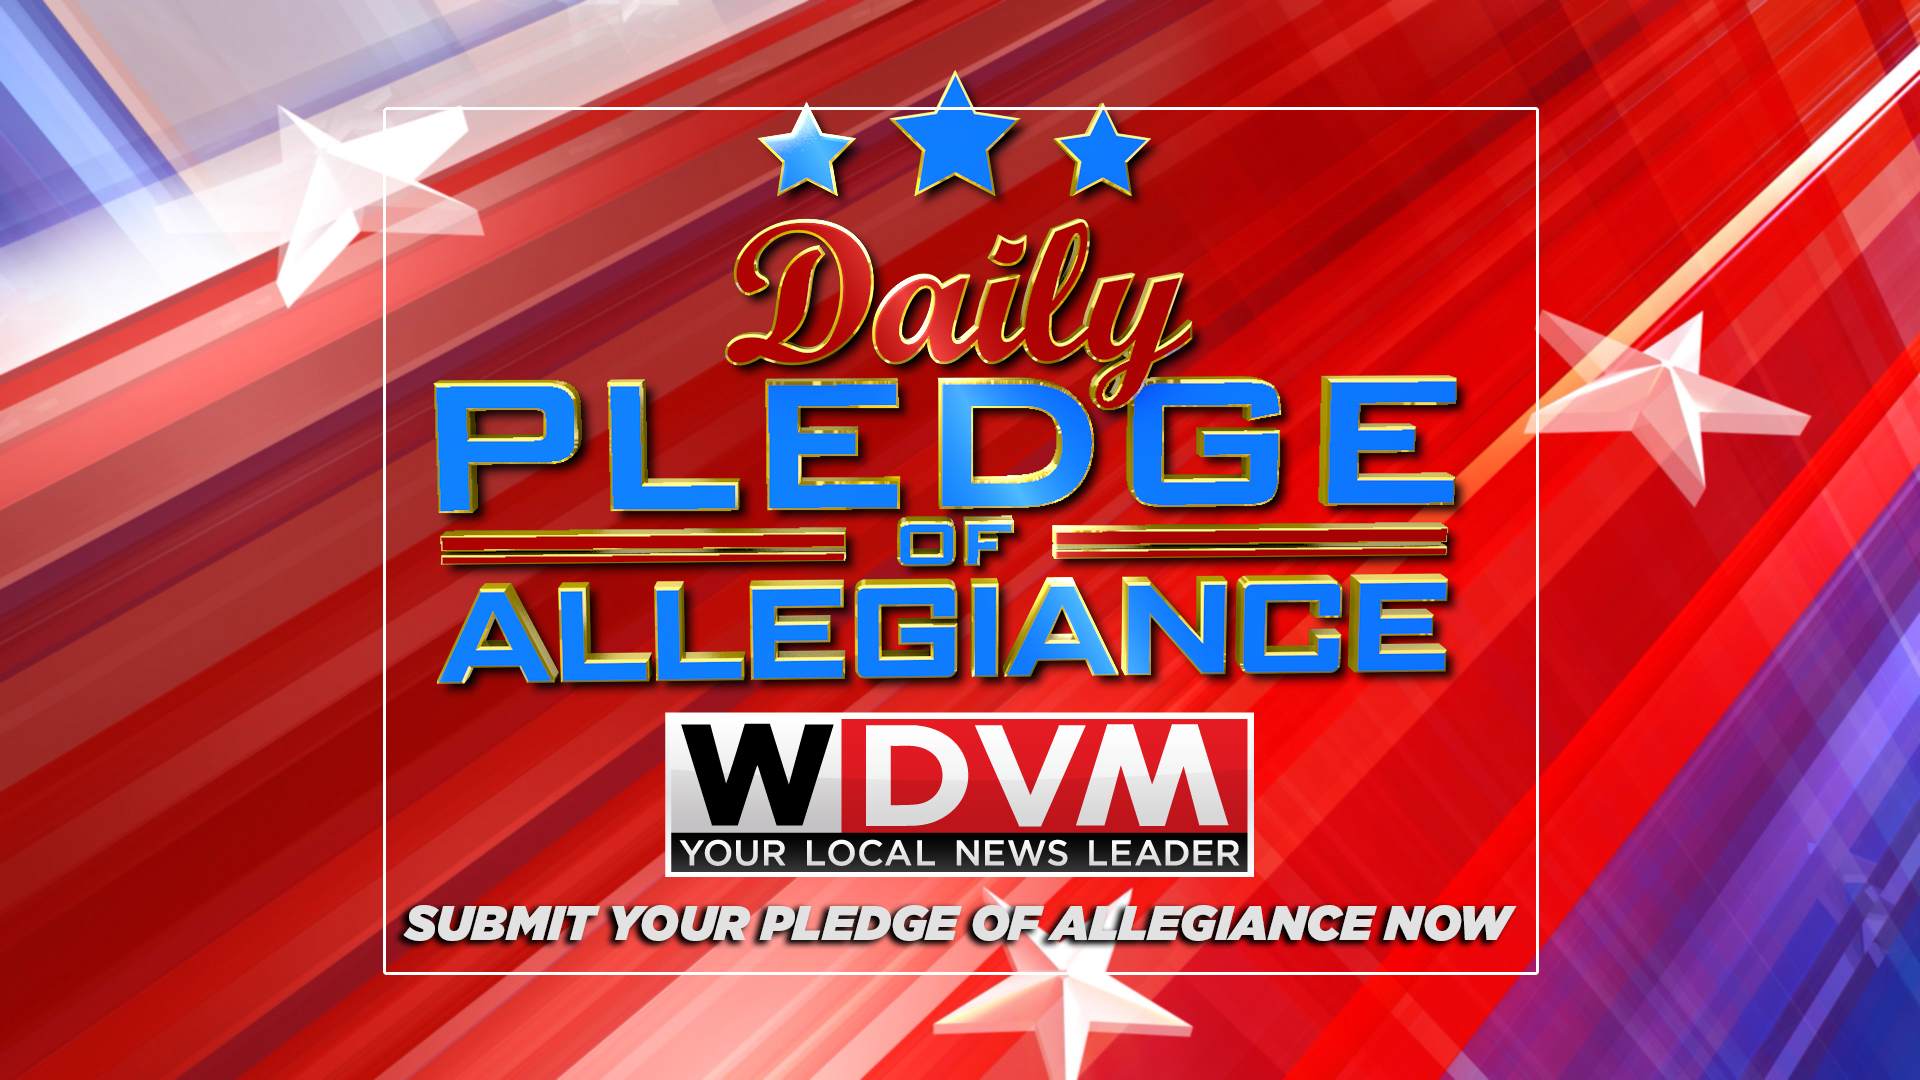 Pledge of Allegiance Submissions